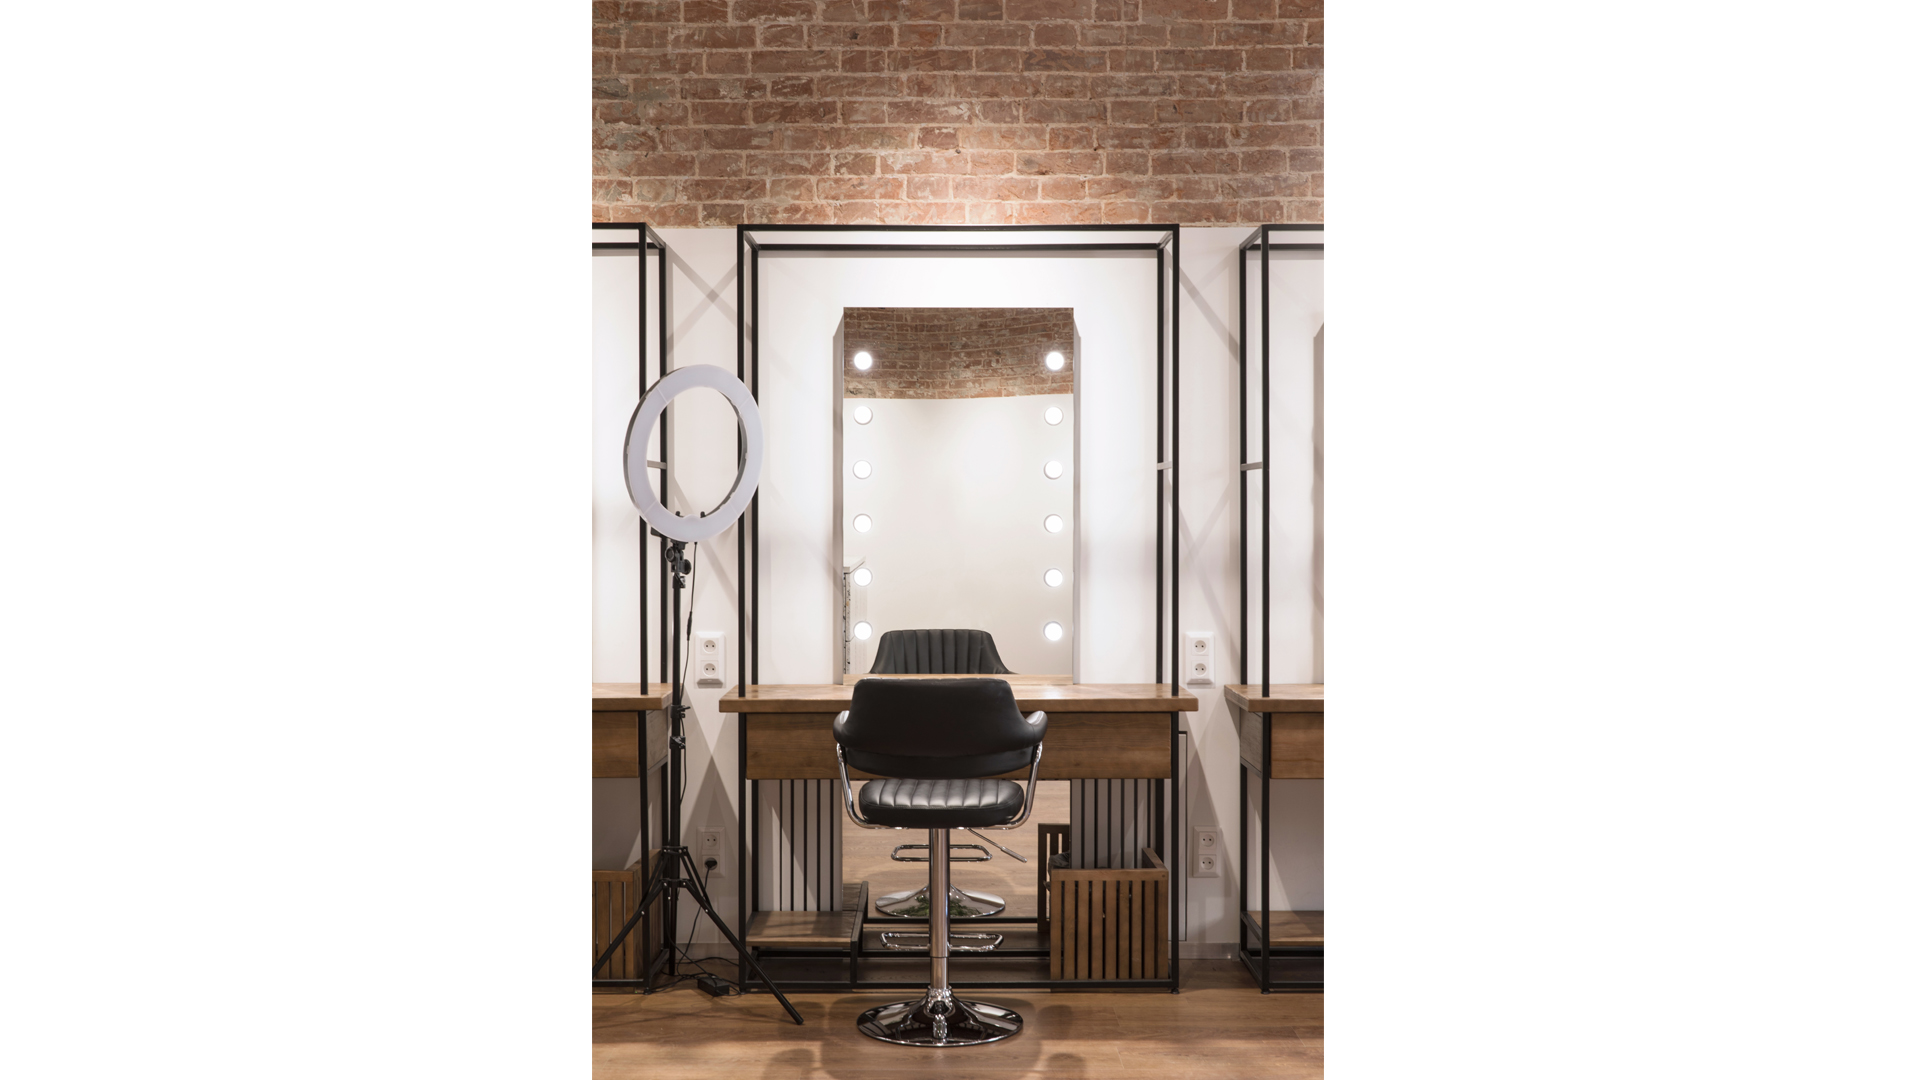 beauty salon interior design photo